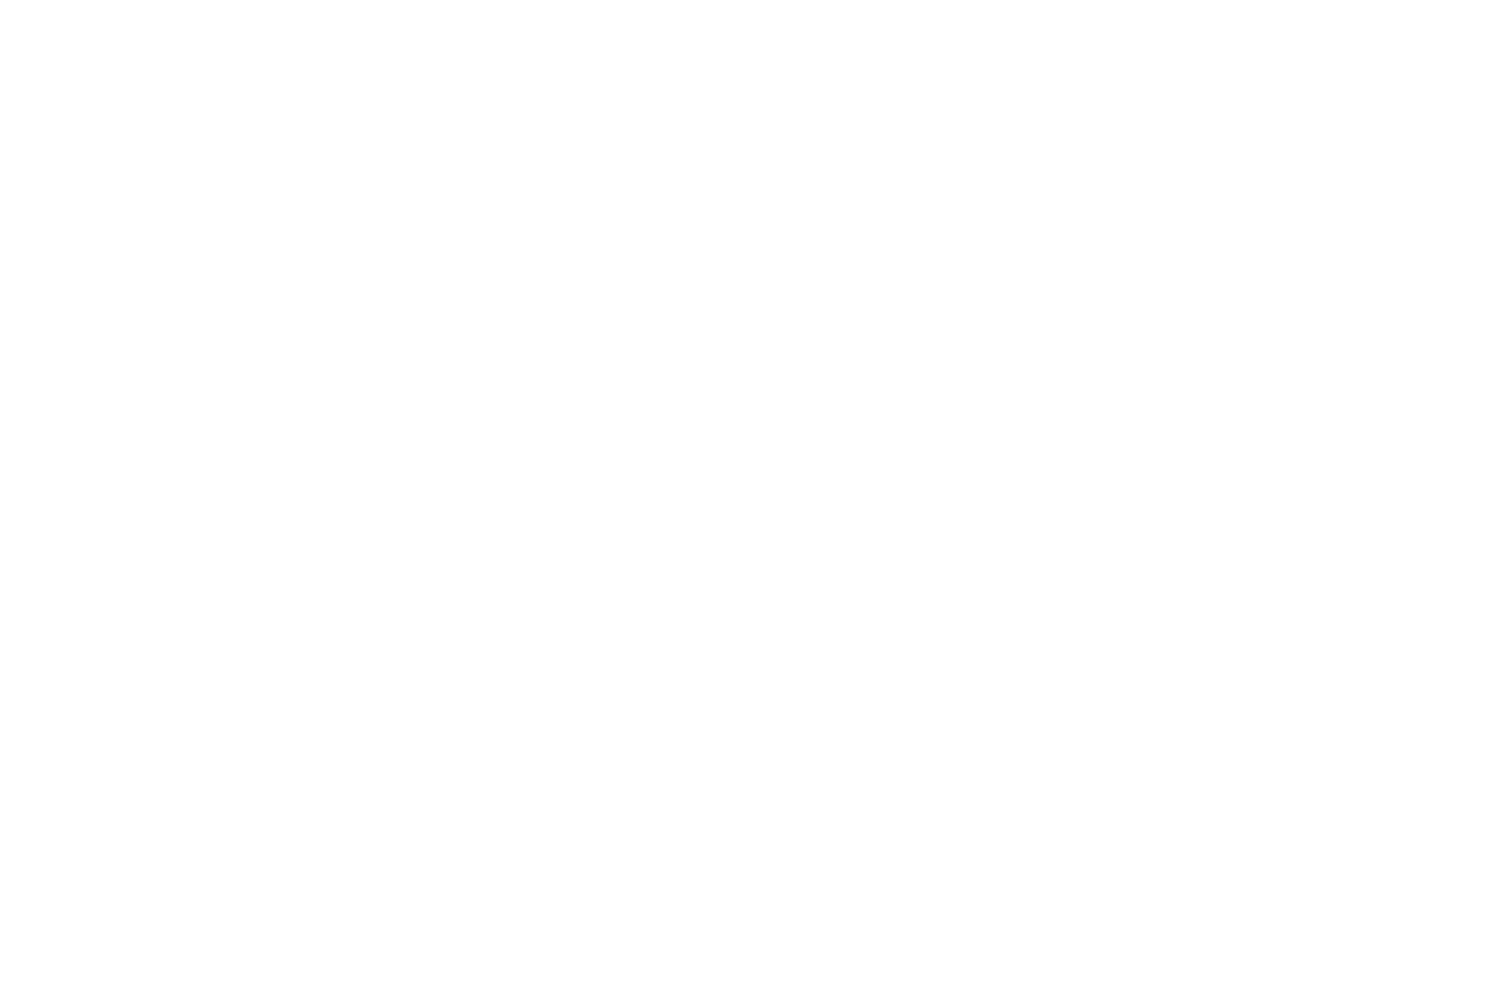 Arielle Joffe Photography